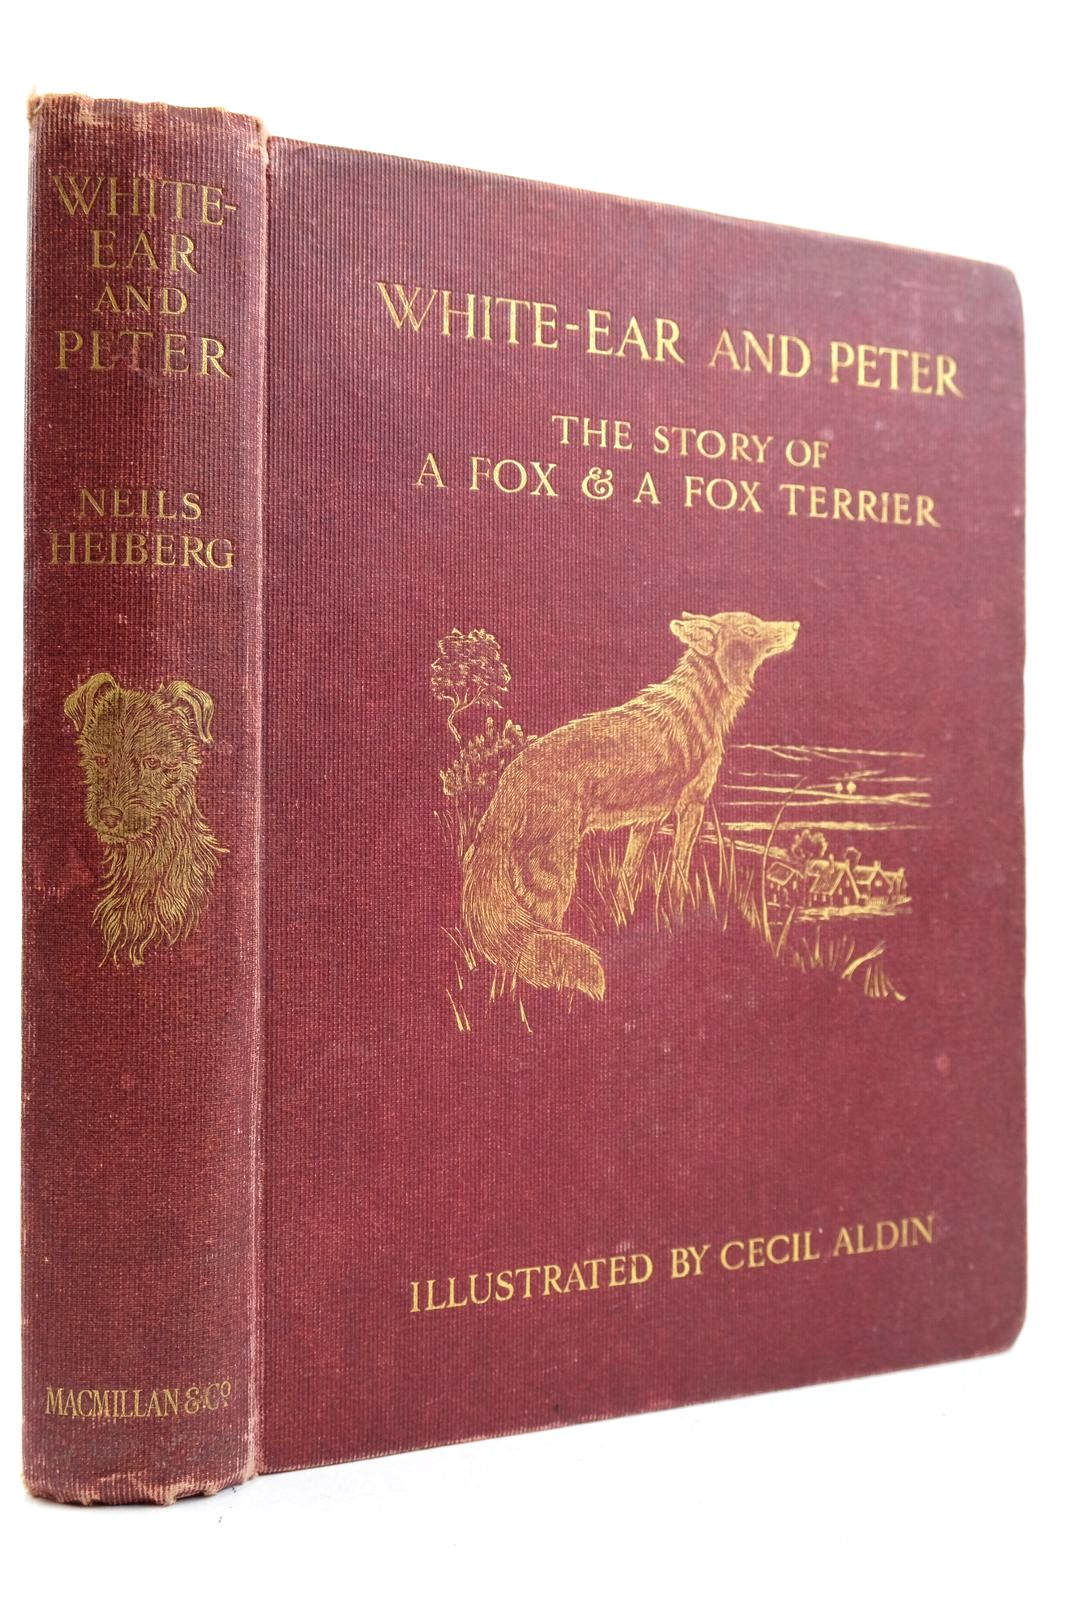 Photo of WHITE-EAR AND PETER- Stock Number: 2133287